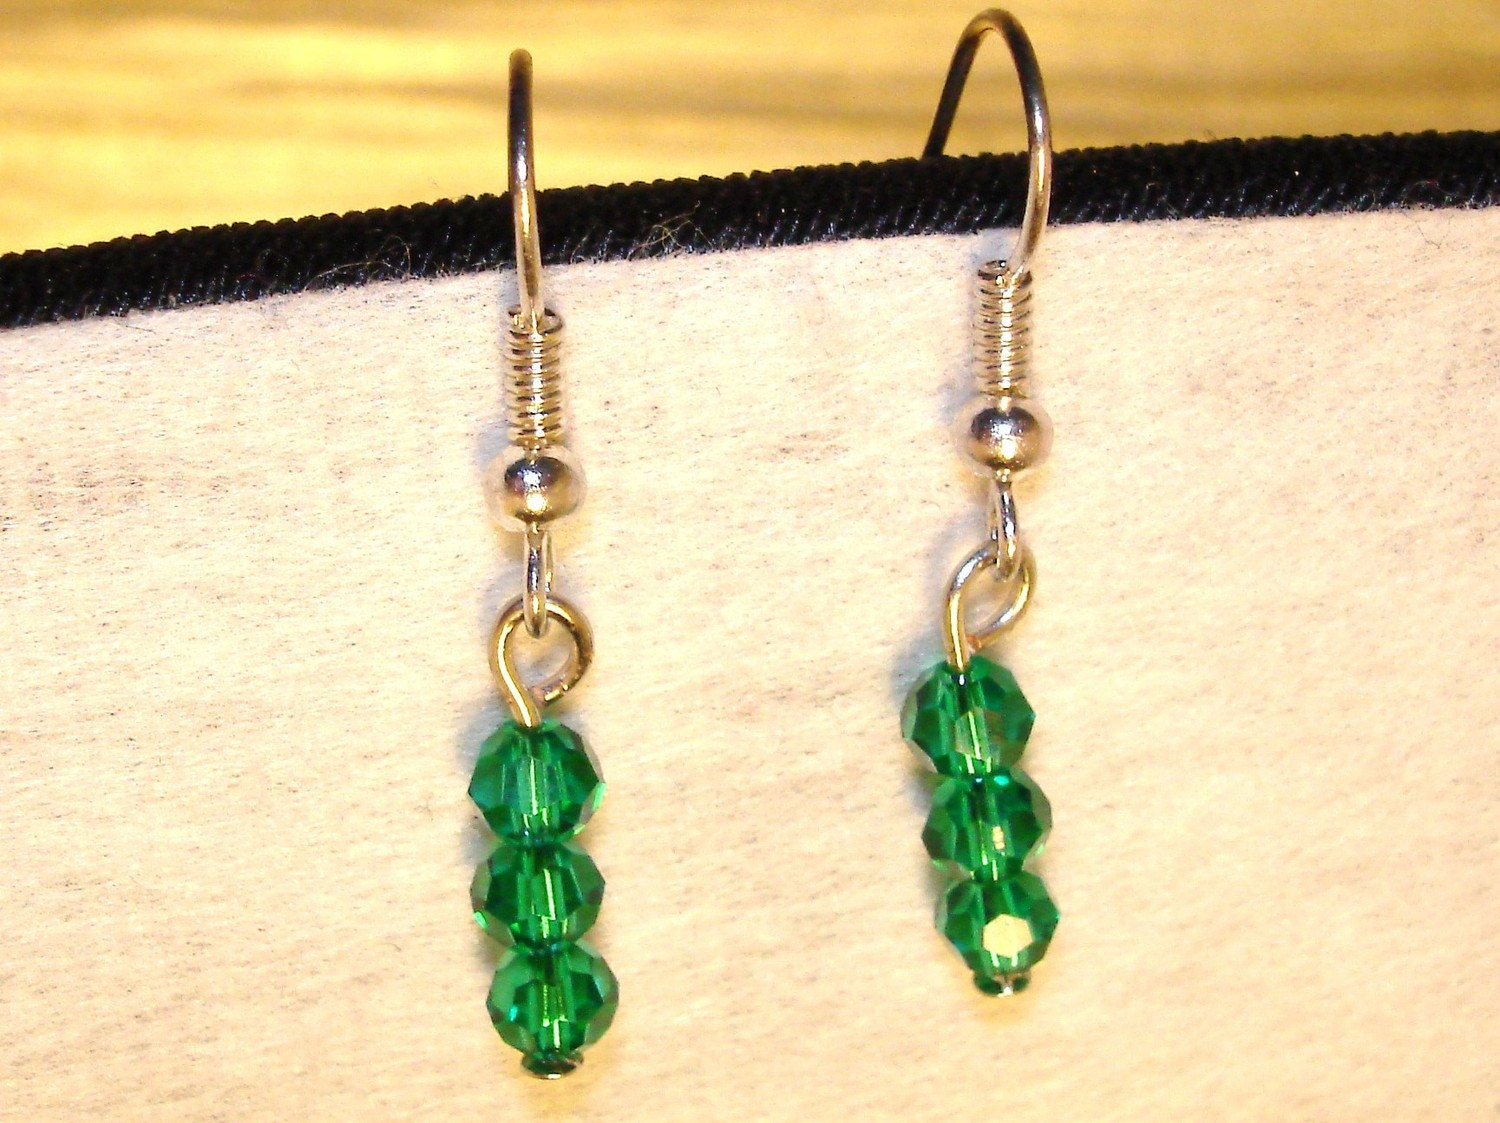 Her beautiful jade eyes say I love you (Jade dangle earrings)